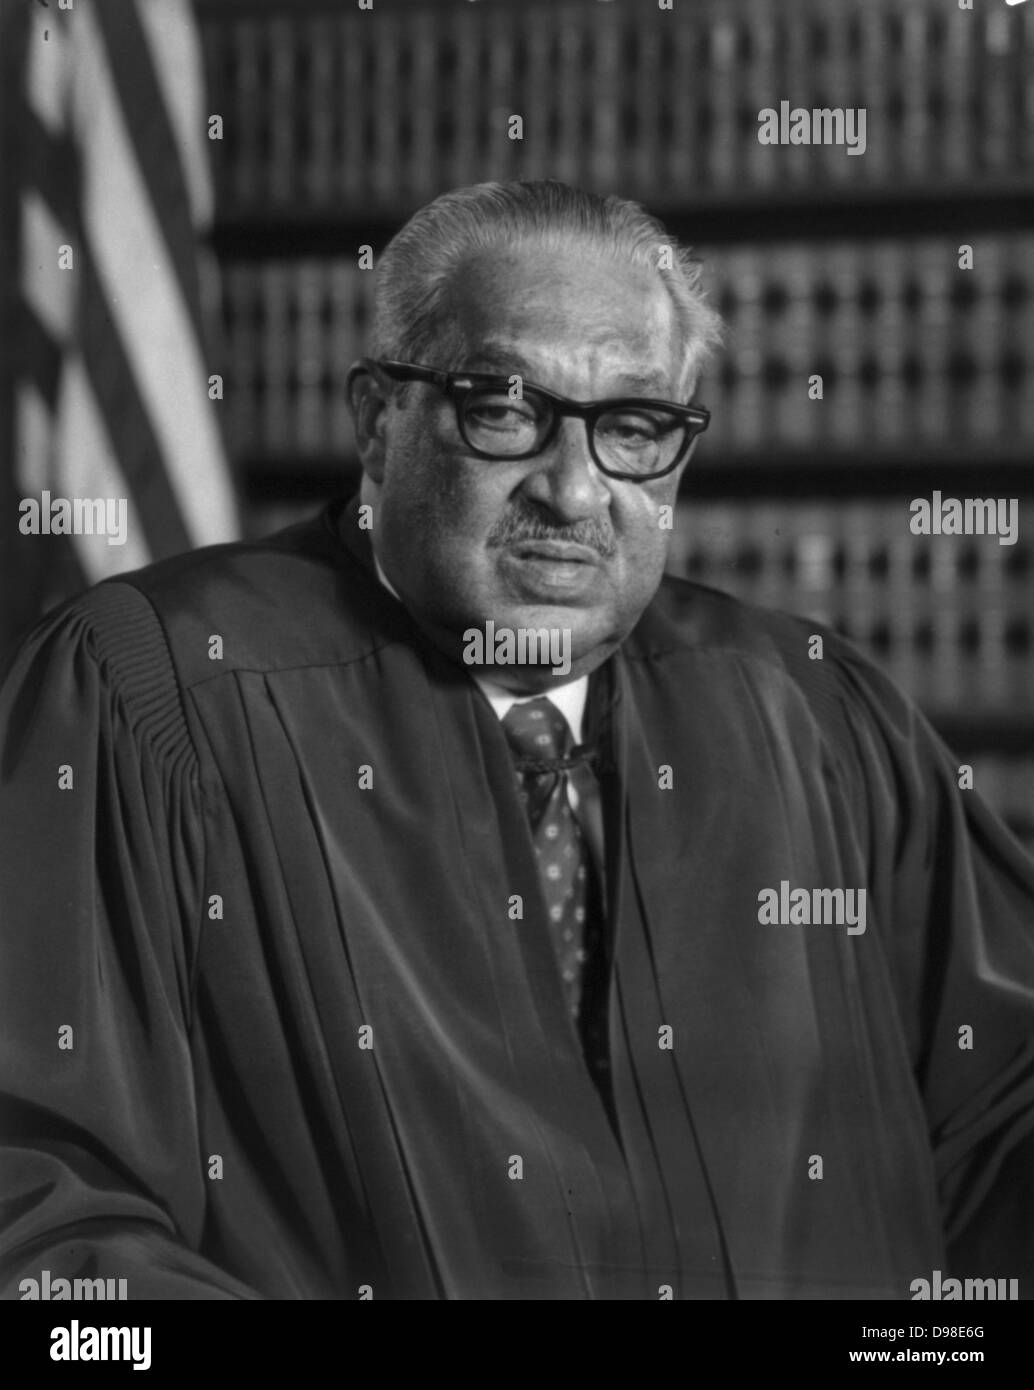 Thugood Marshall 1908-1993) American jurist. First African American to serve on the Supreme Court 1767-1991. - Stock Image